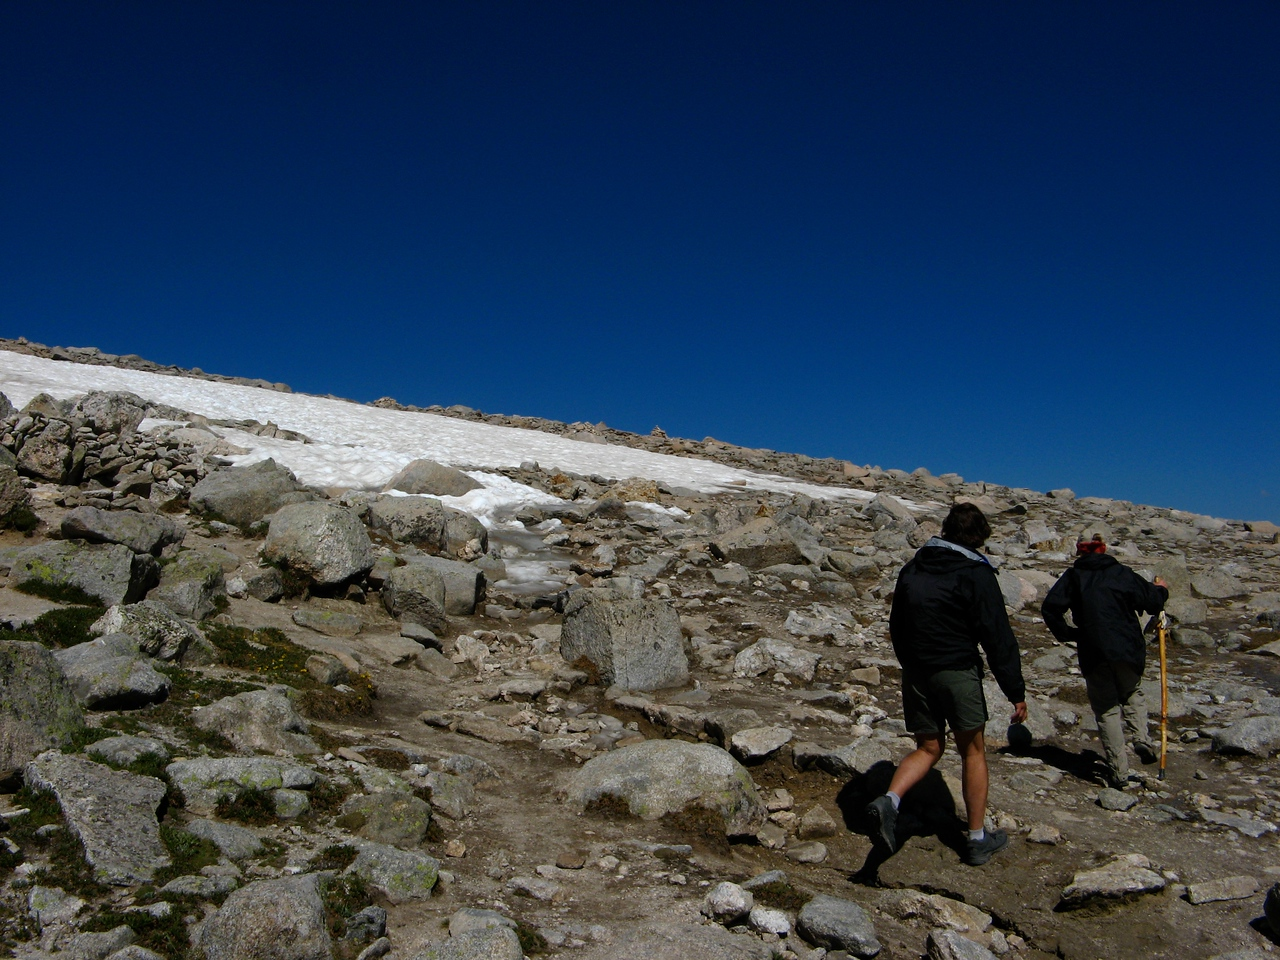 From here, the trail scales a perennial snowfield over the hitchrack and levels on the final run up to Flattop Mountain (4.3 miles in at an elevation of 12,324')